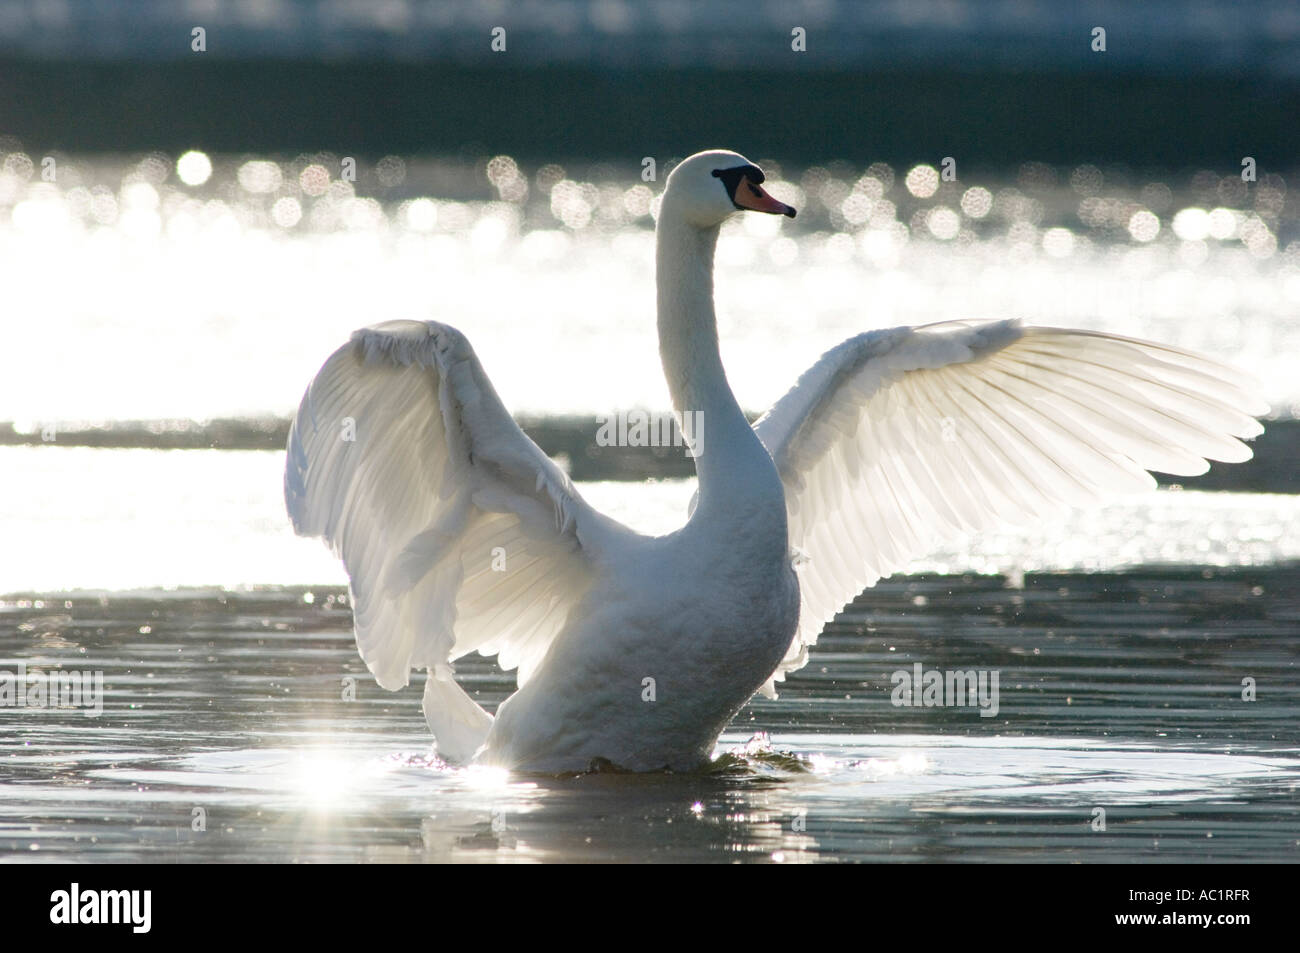 Mute swan, close-up - Stock Image